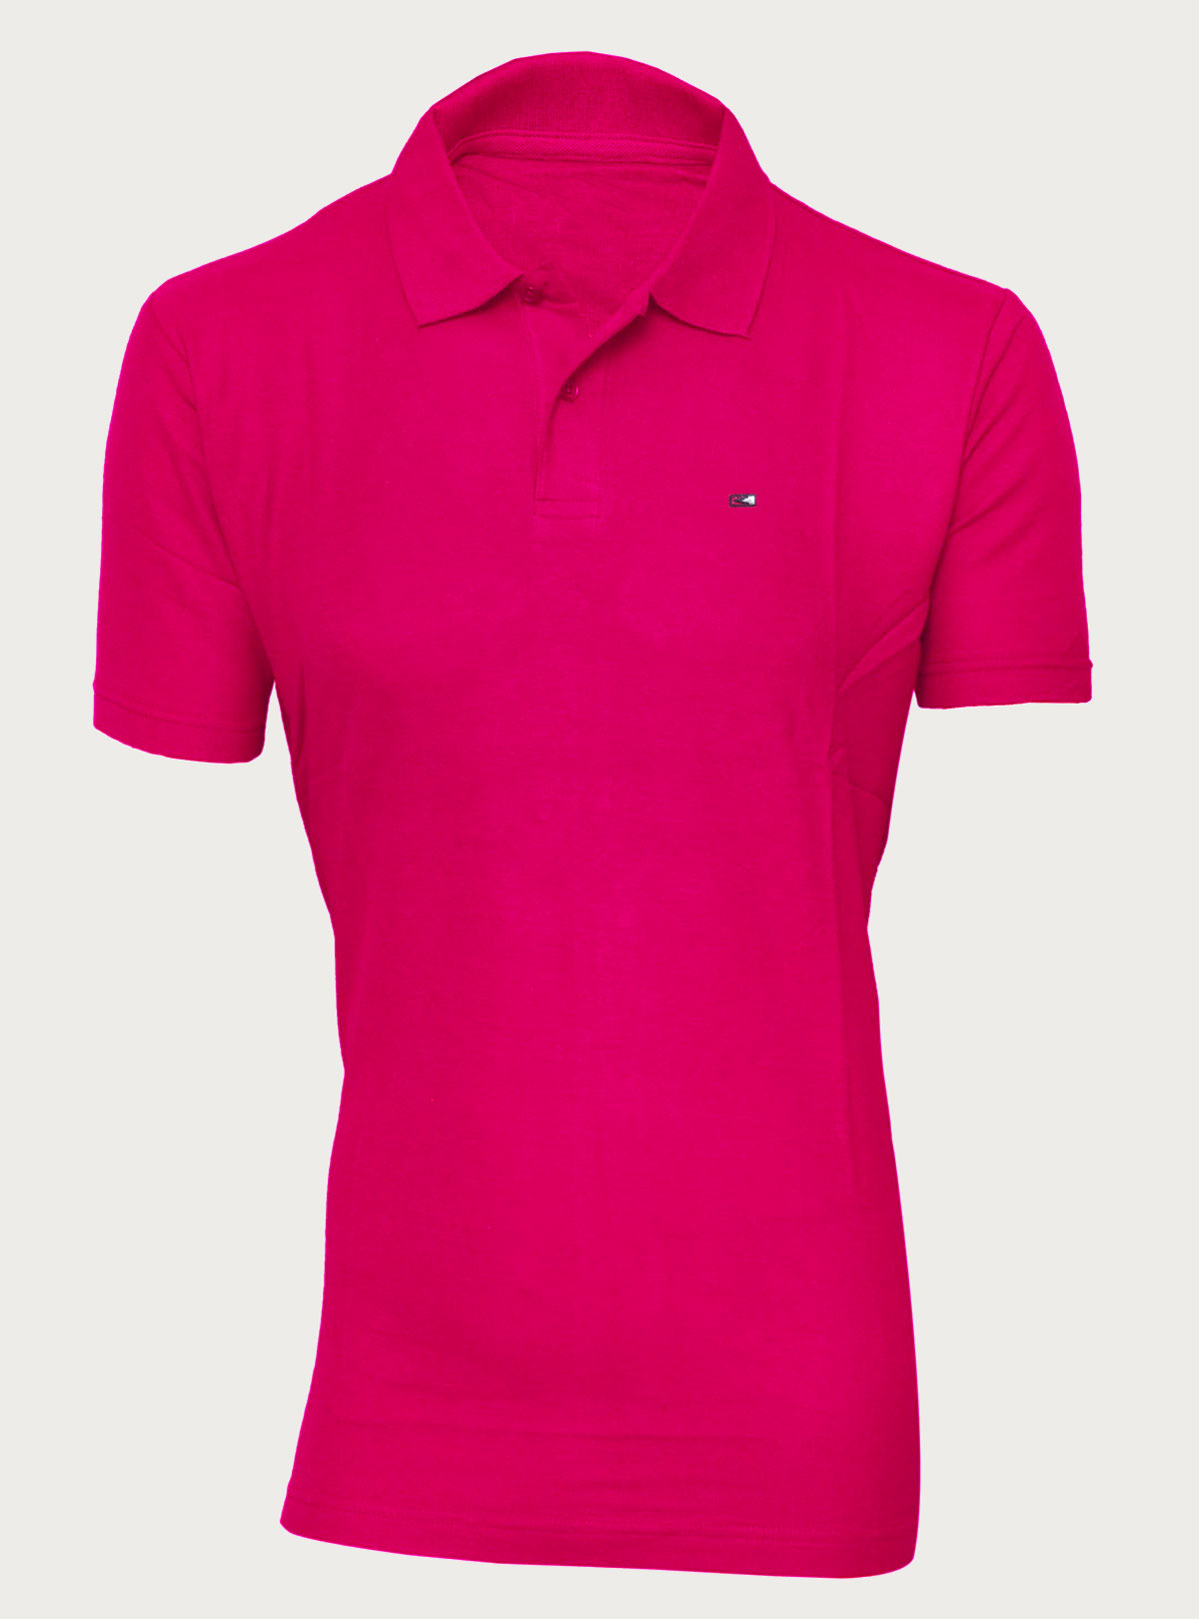 STYLISH POLO T-SHIRT BY-OWK